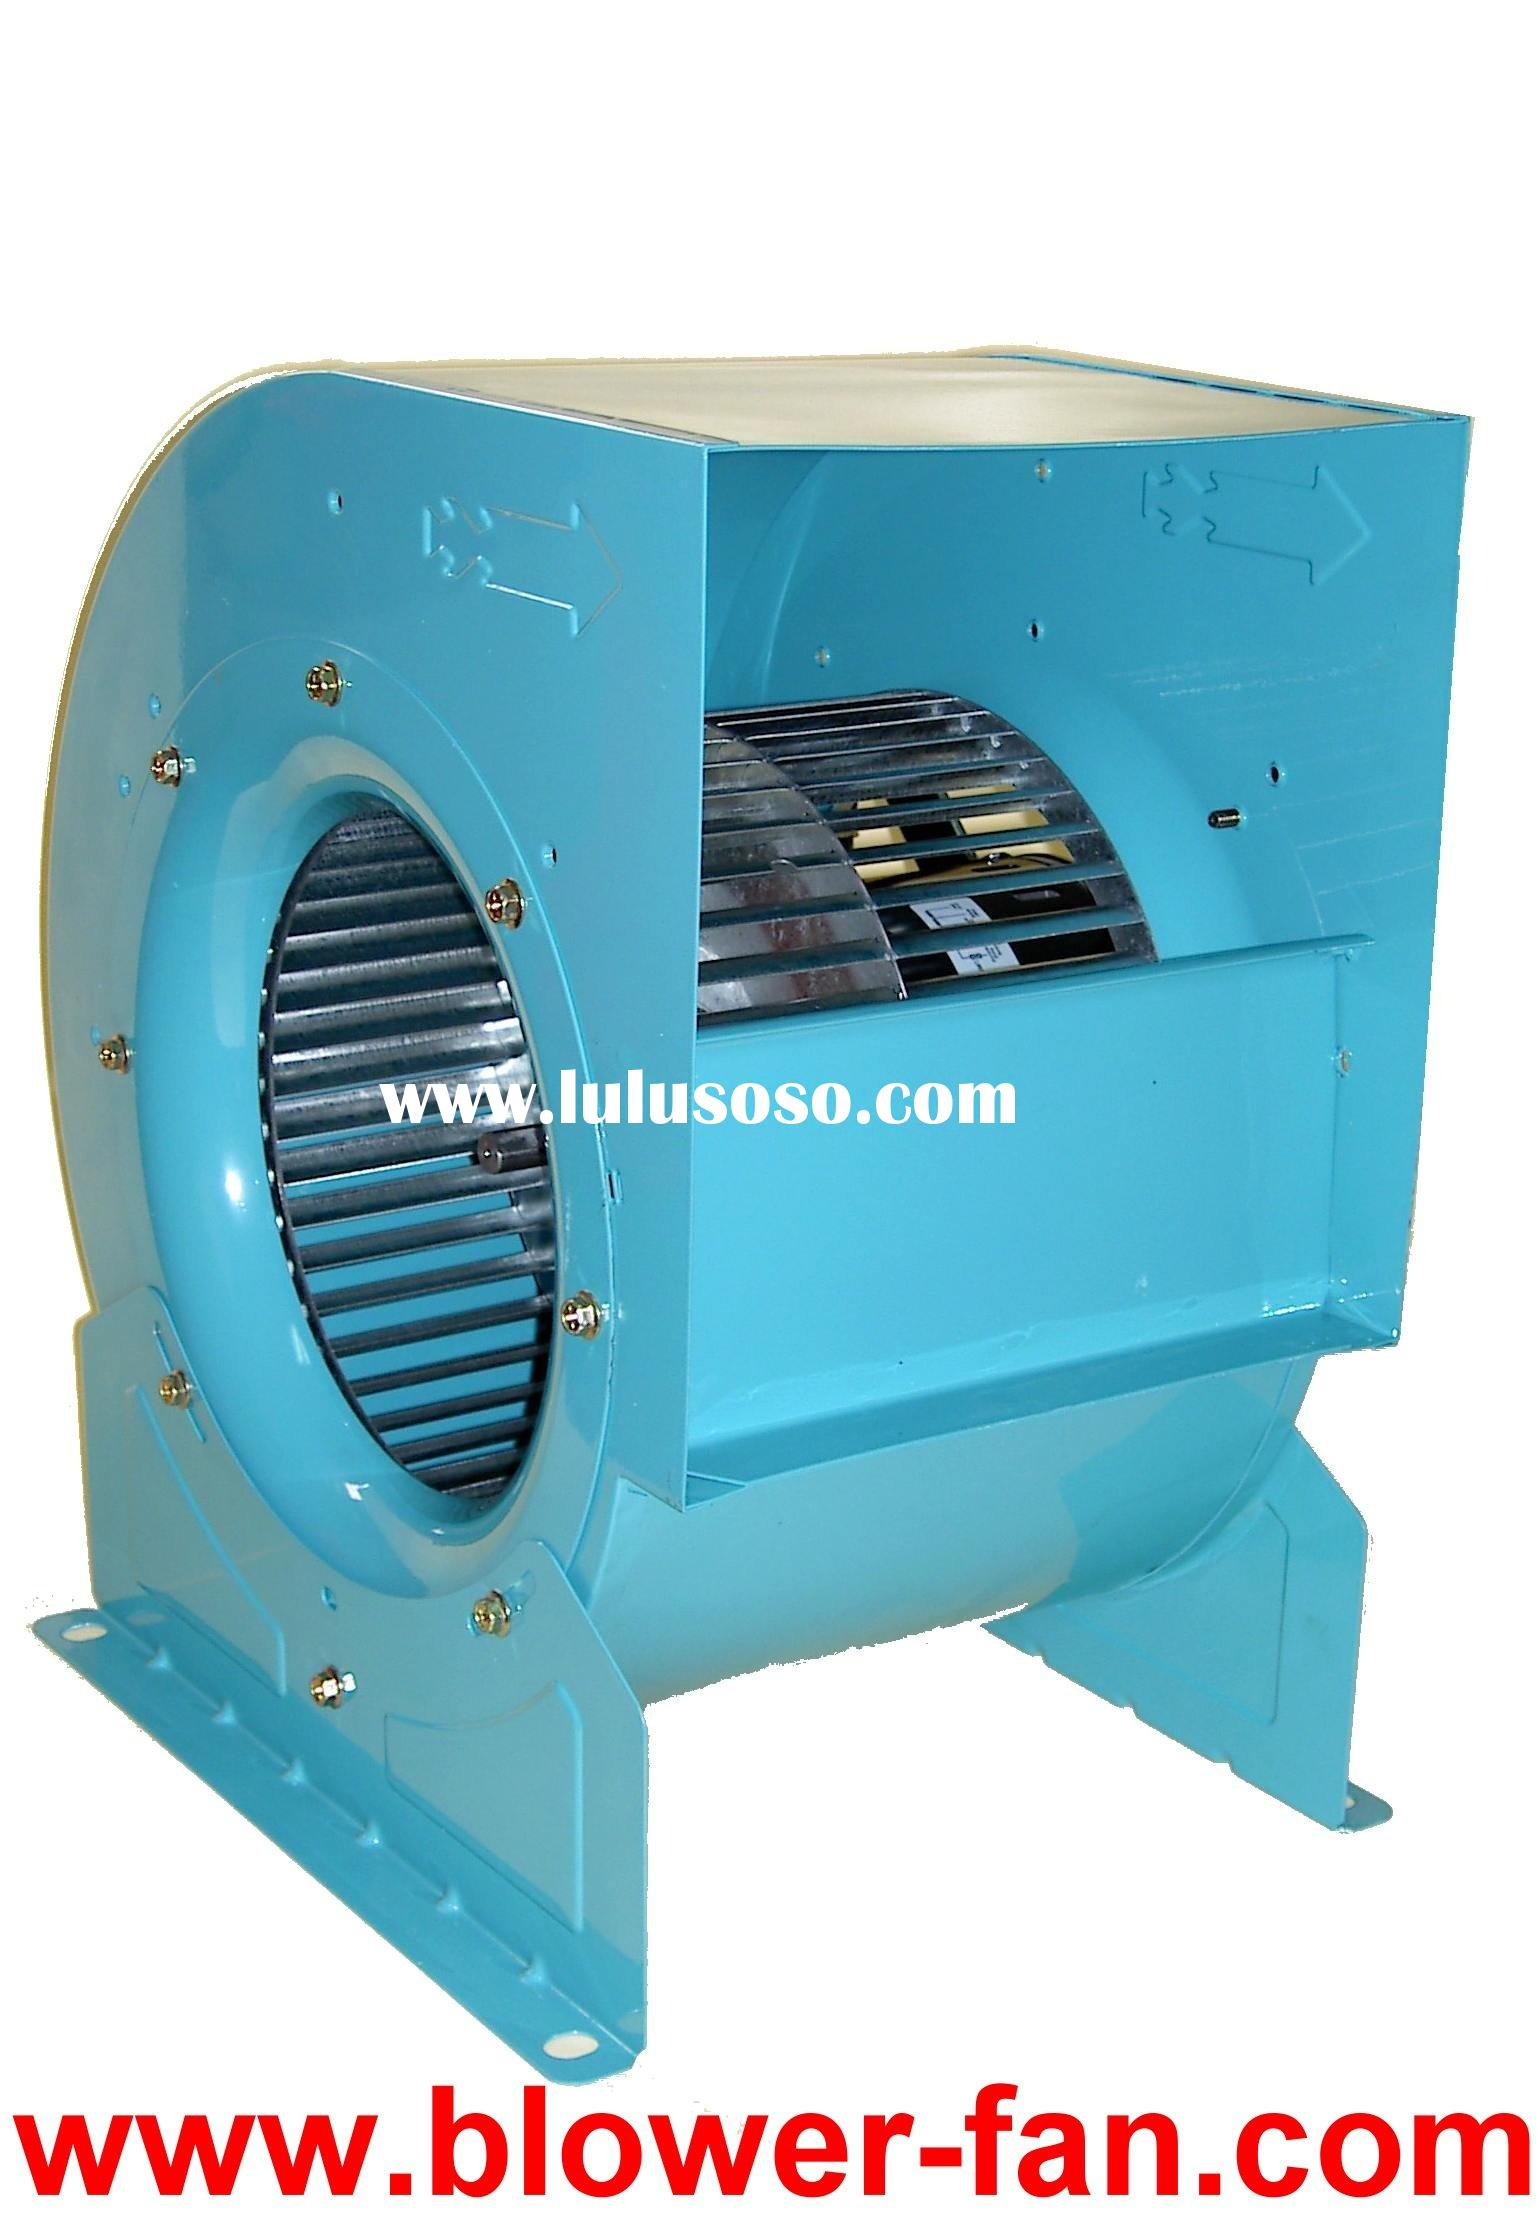 Pvc Fans And Blowers : Plastic blower wheel housing